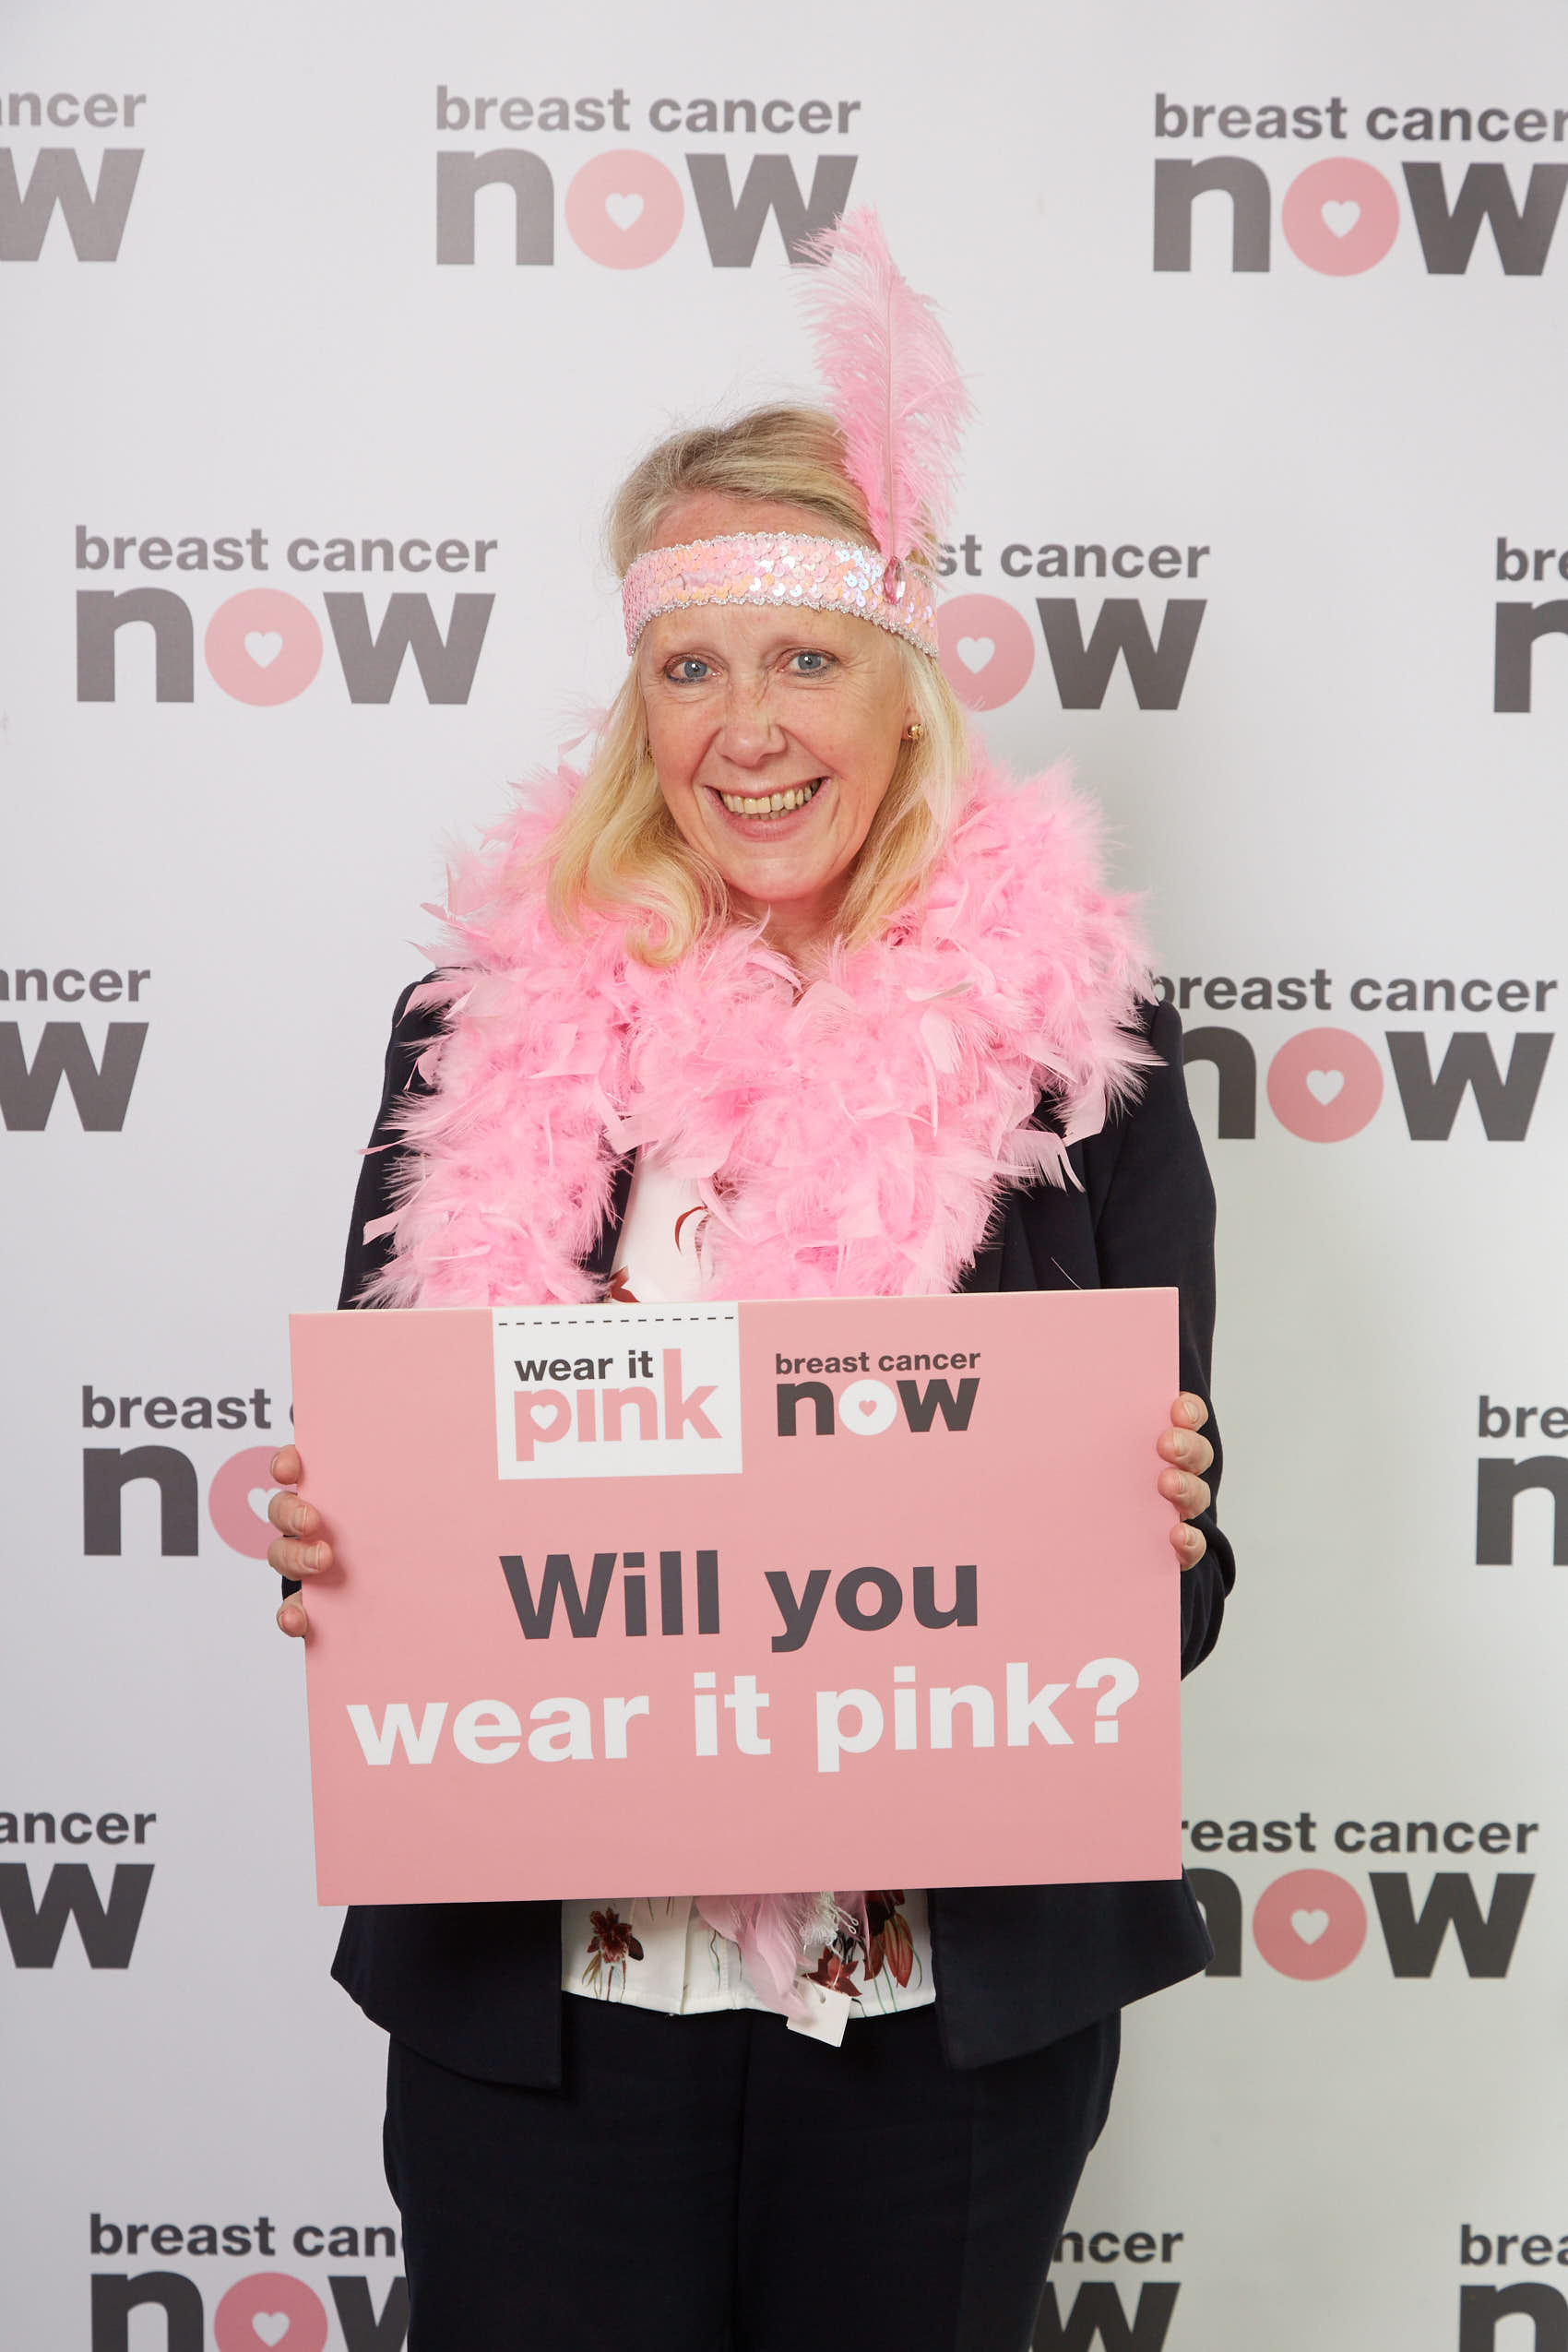 Liz_McInnes_MP_Wear_It_Pink.jpg